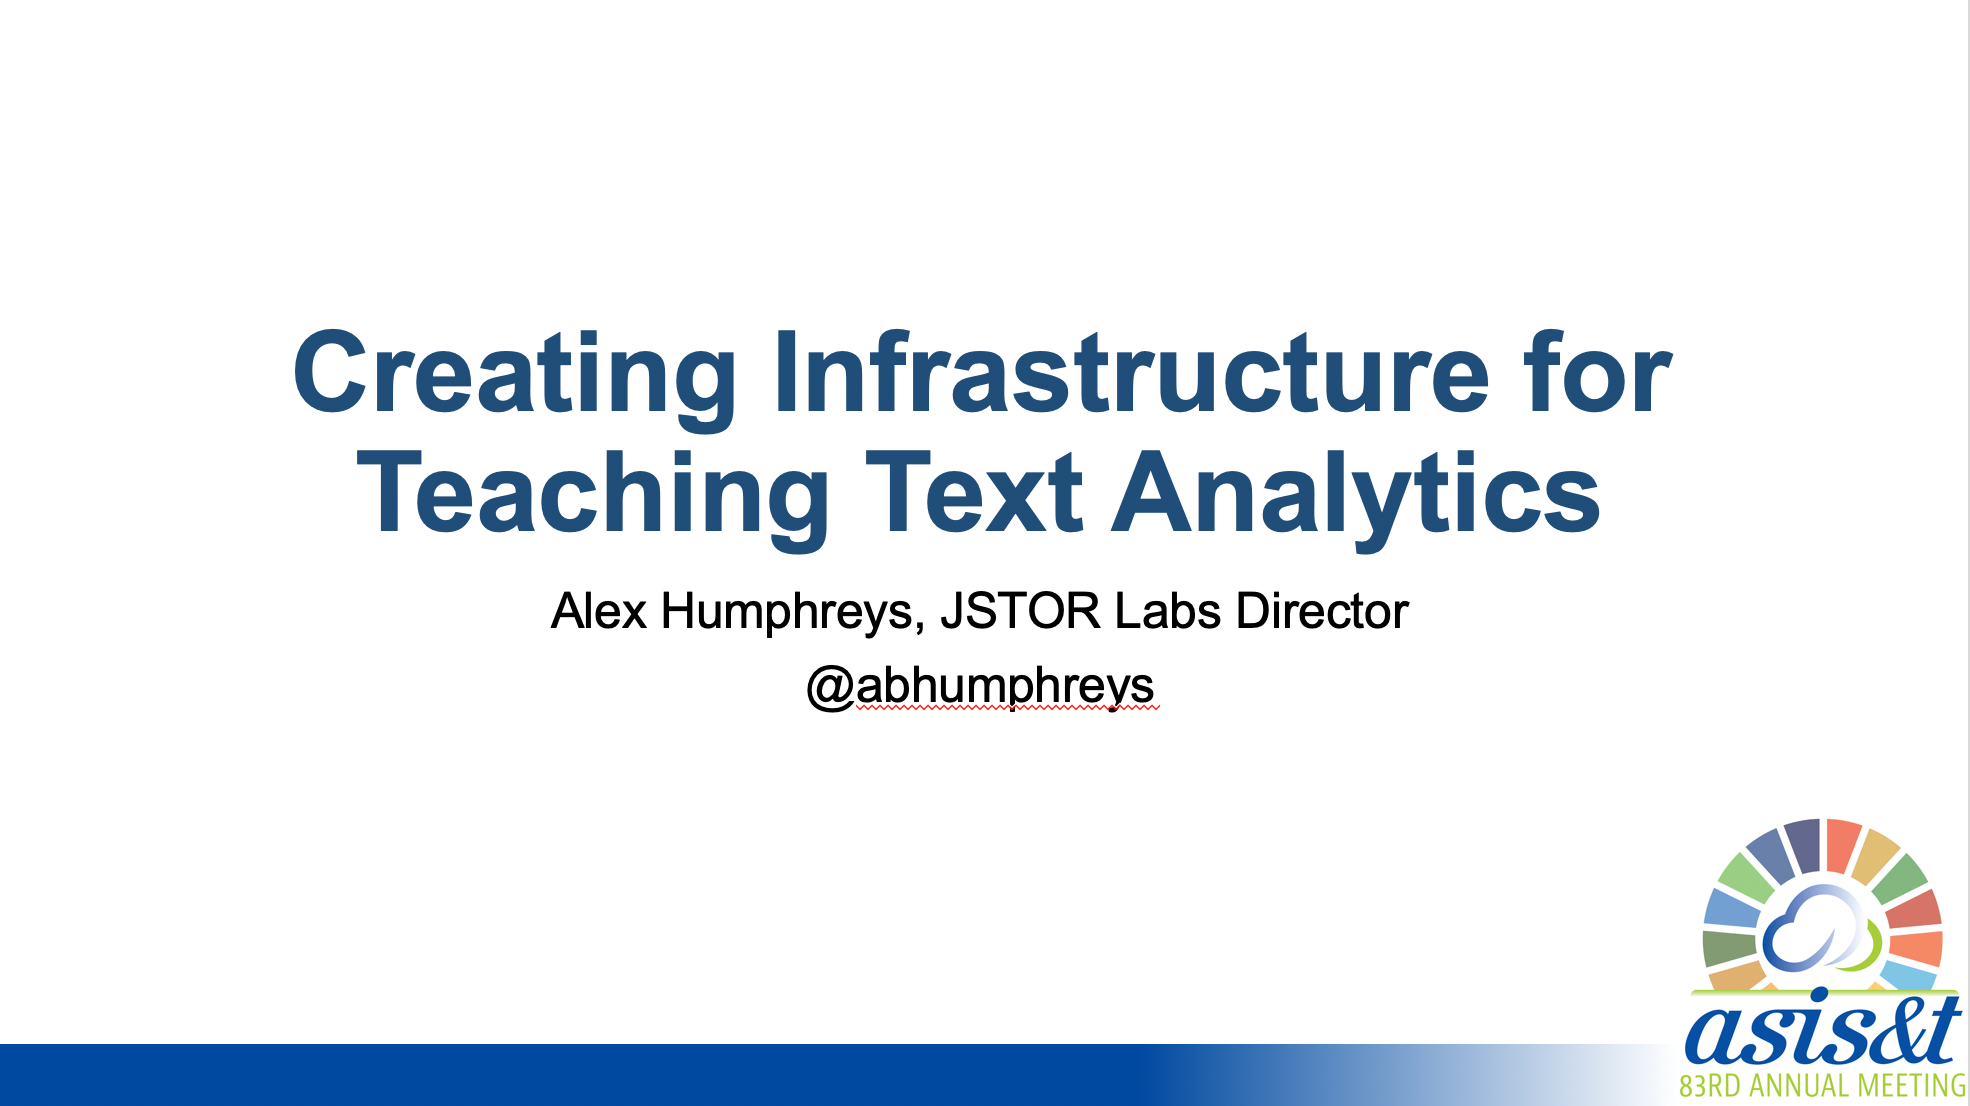 Creating Infrastructure for Teaching Text Analytics